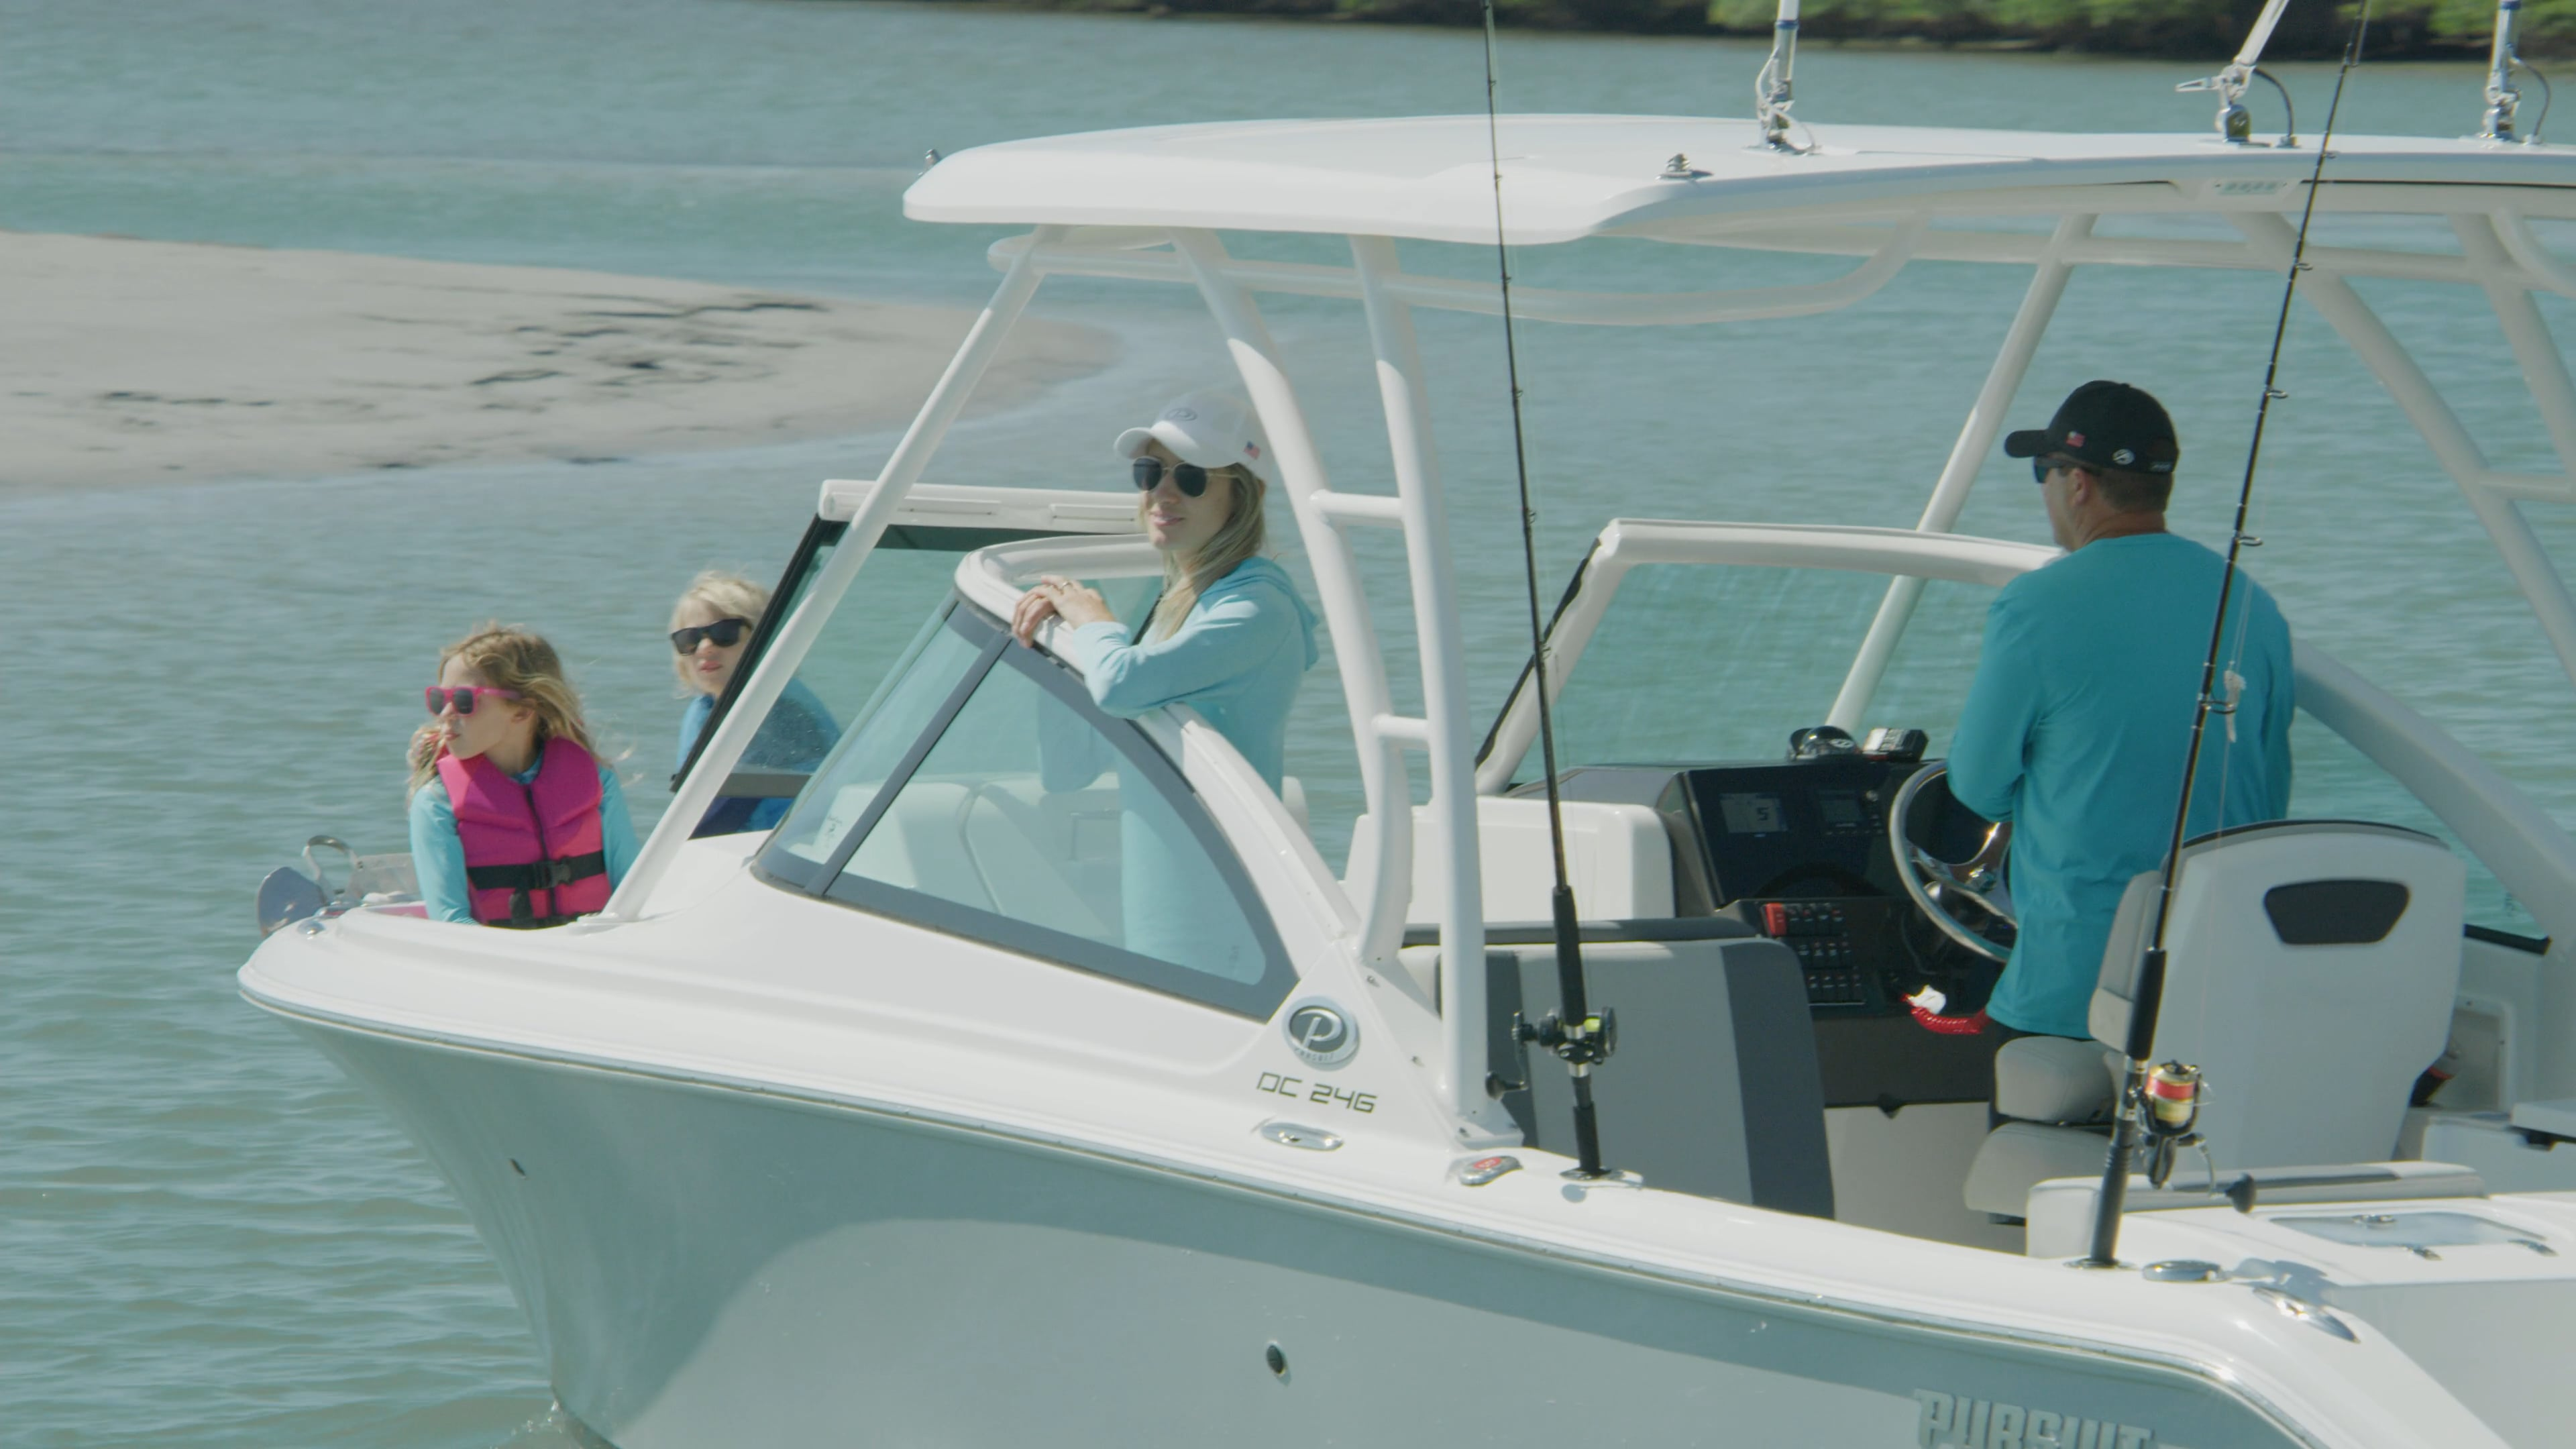 A family relax on 25' DC 246 Pursuit dual console boat.